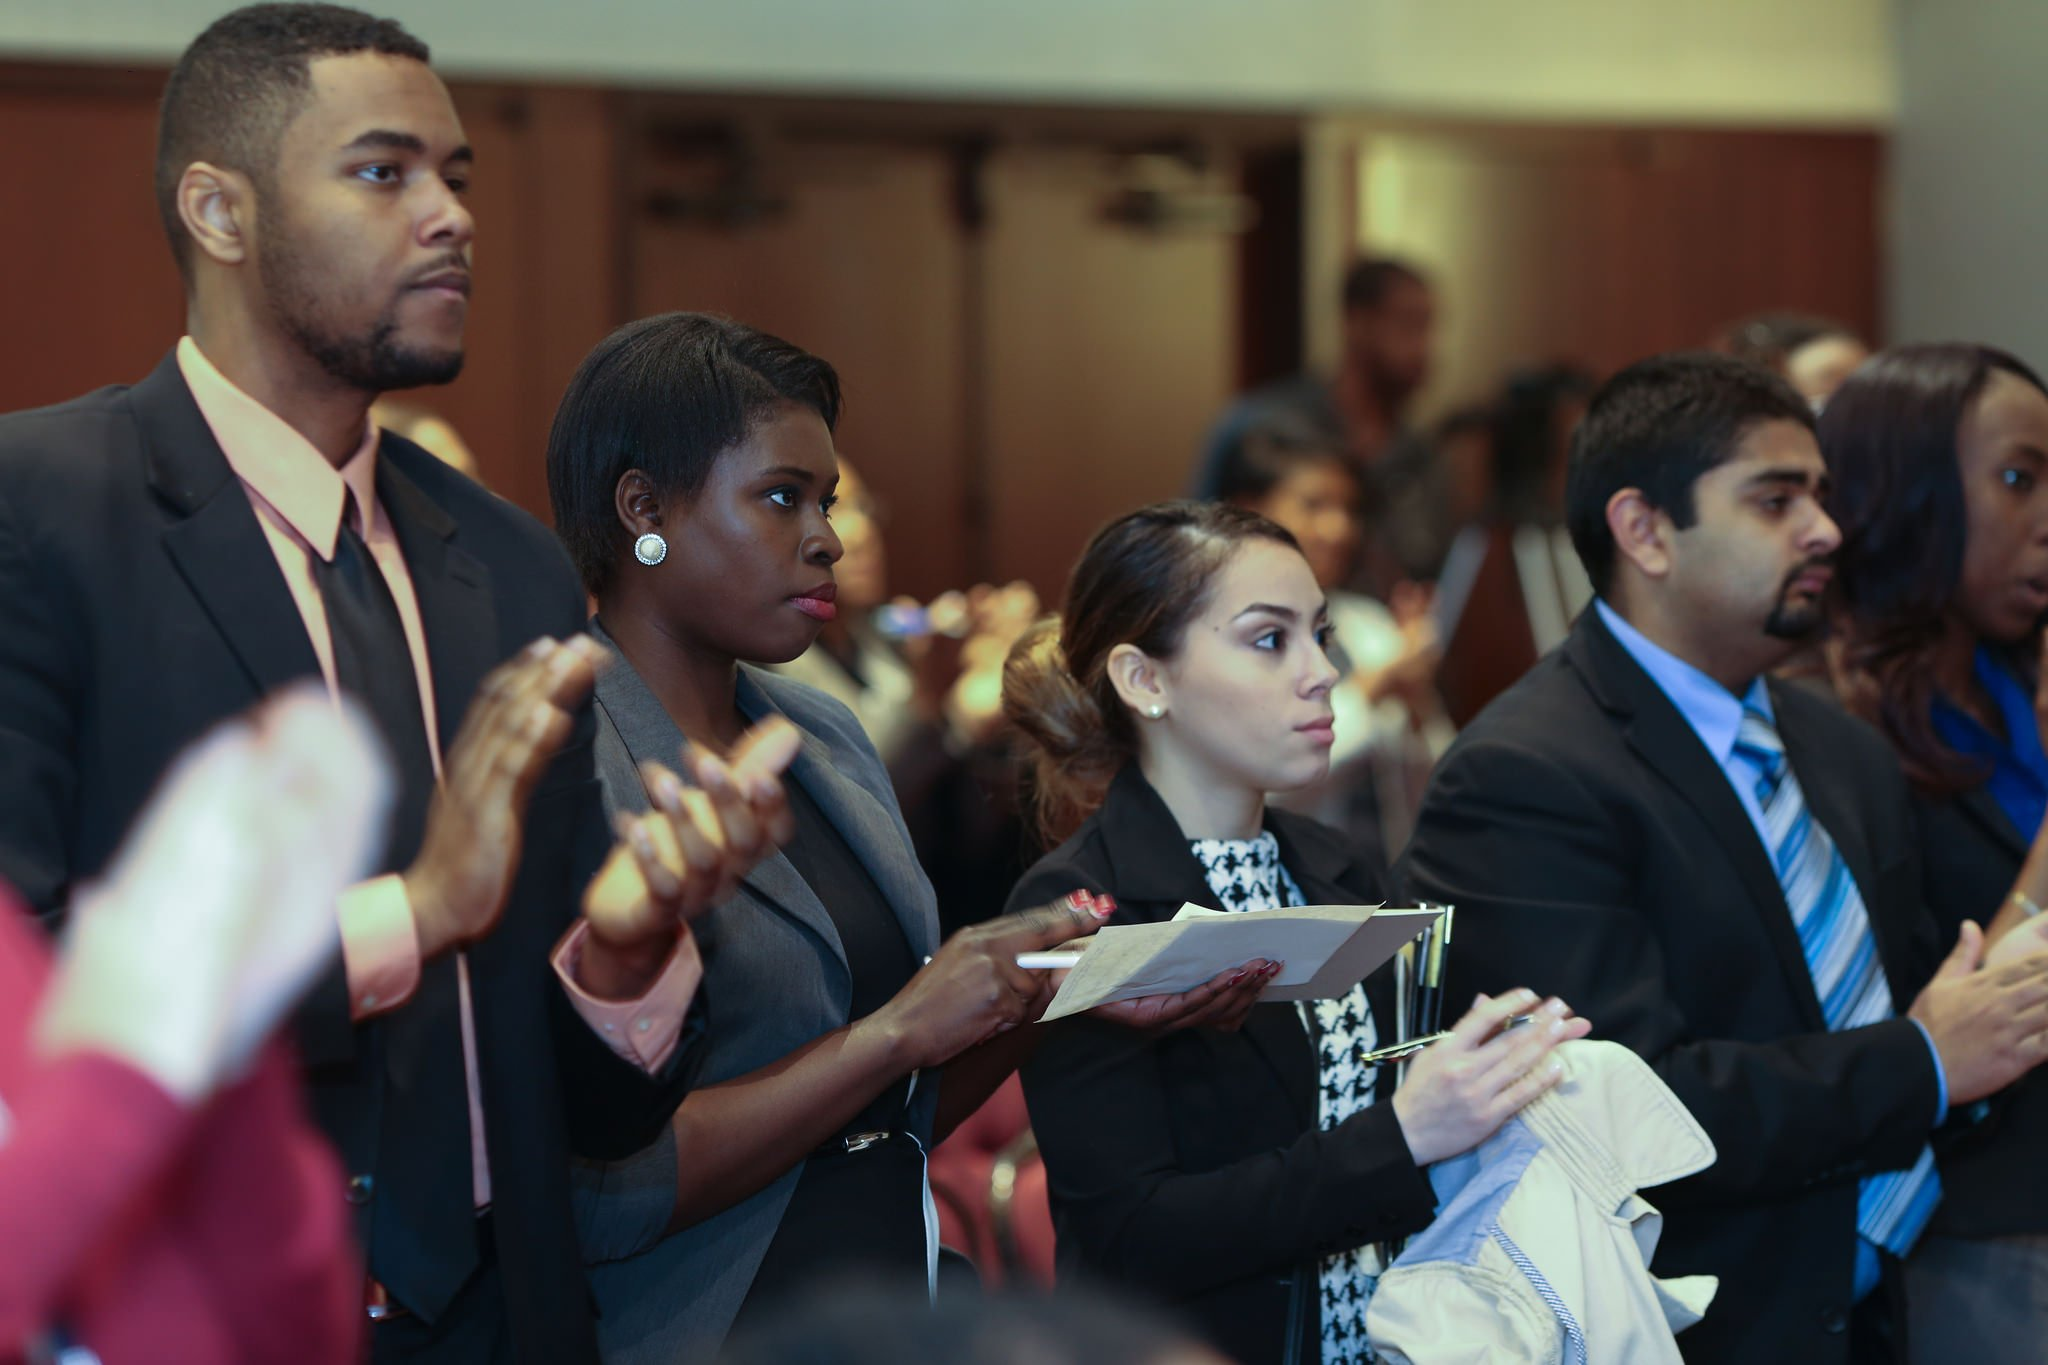 National Diversity Pre-Law Conference Seeks to Empower Diverse Aspiring Lawyers